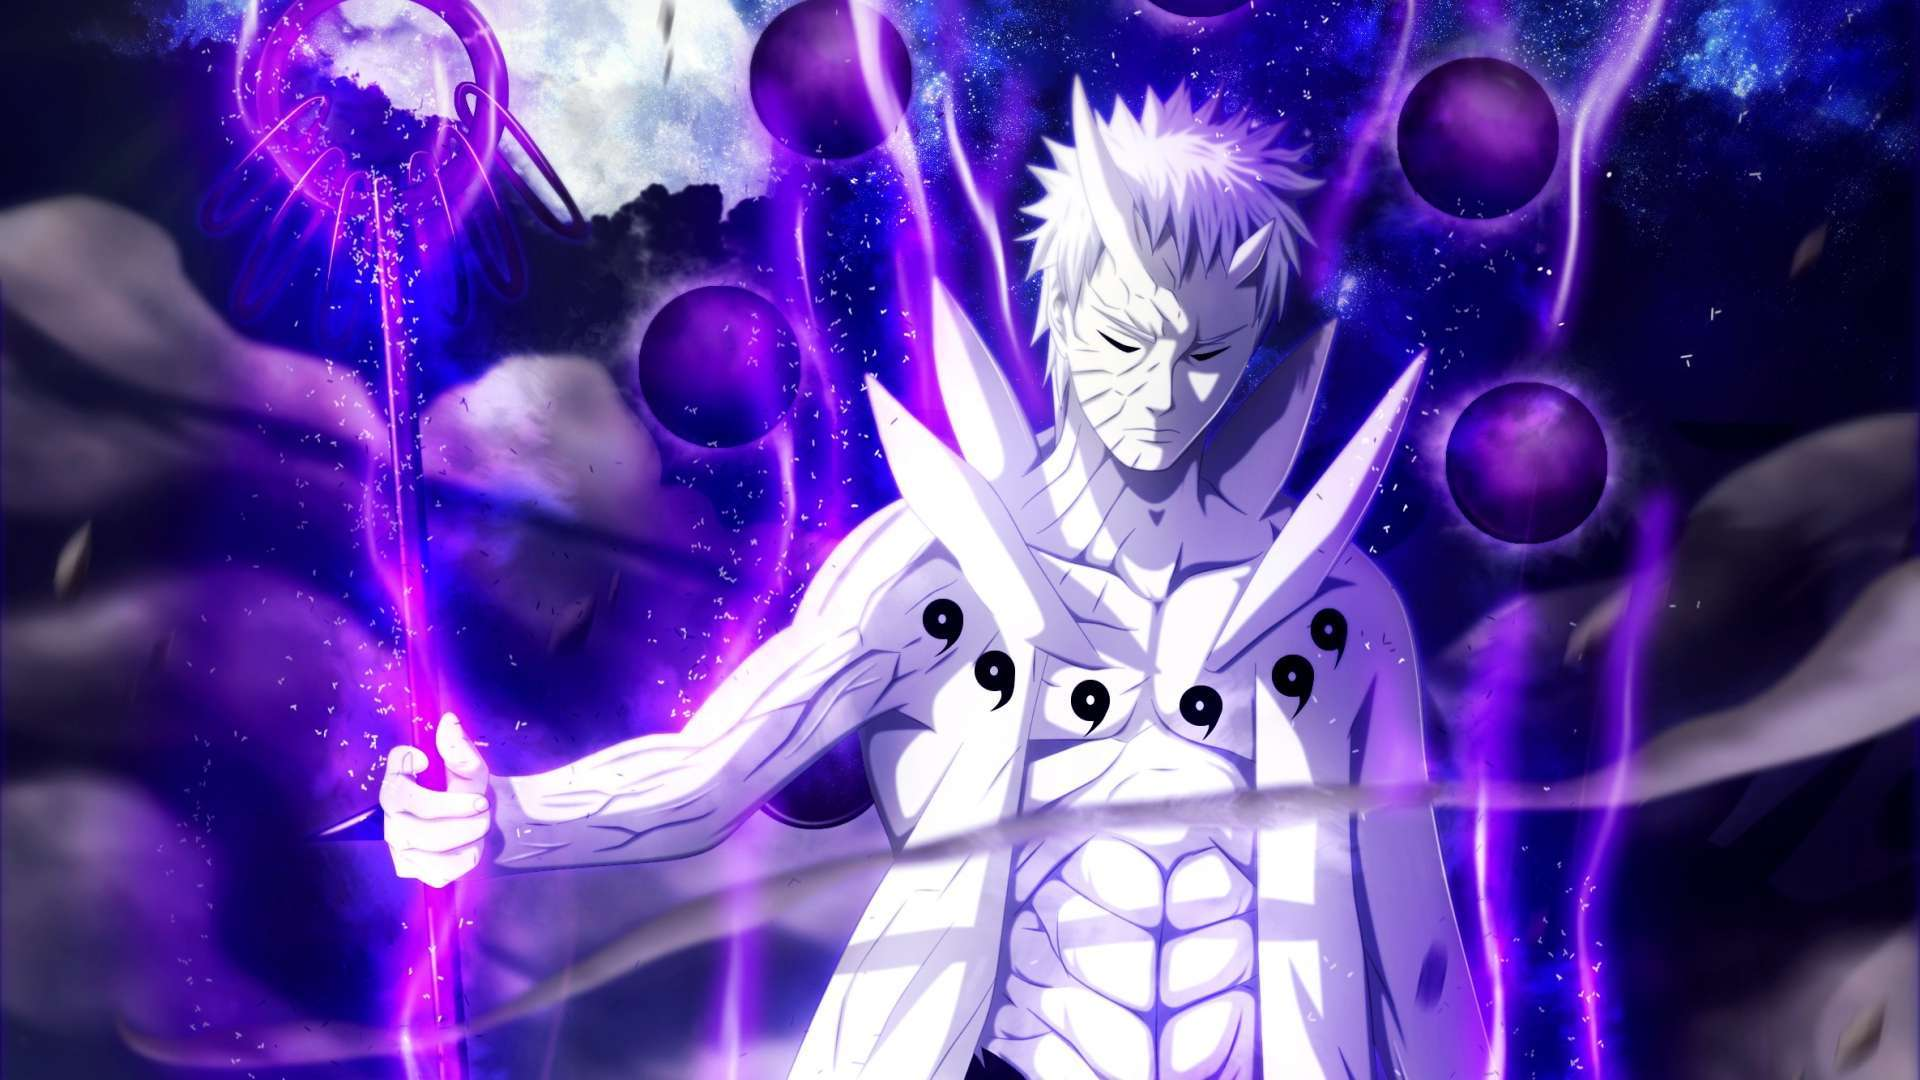 Purple Anime Wallpapers 1080p Wallpaper Cave